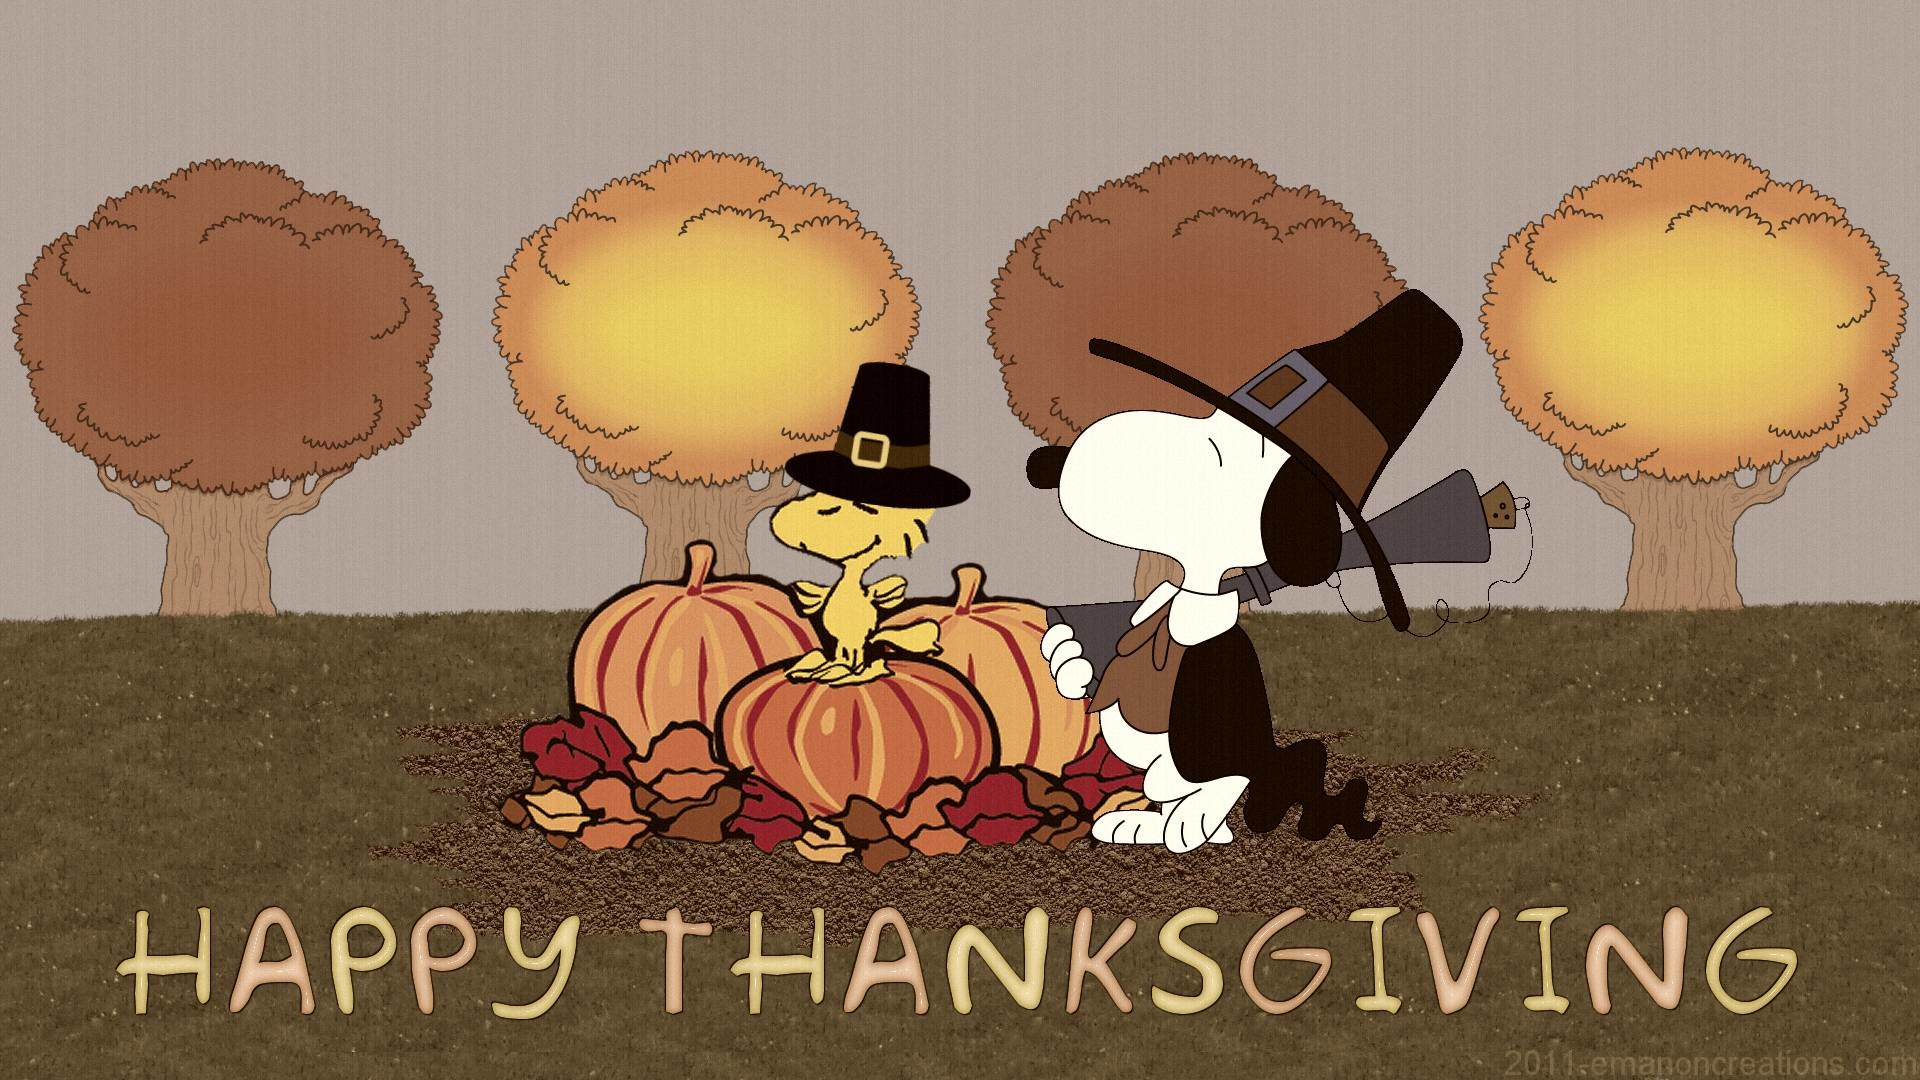 … charlie brown thanksgiving wallpapers wallpaper cave …